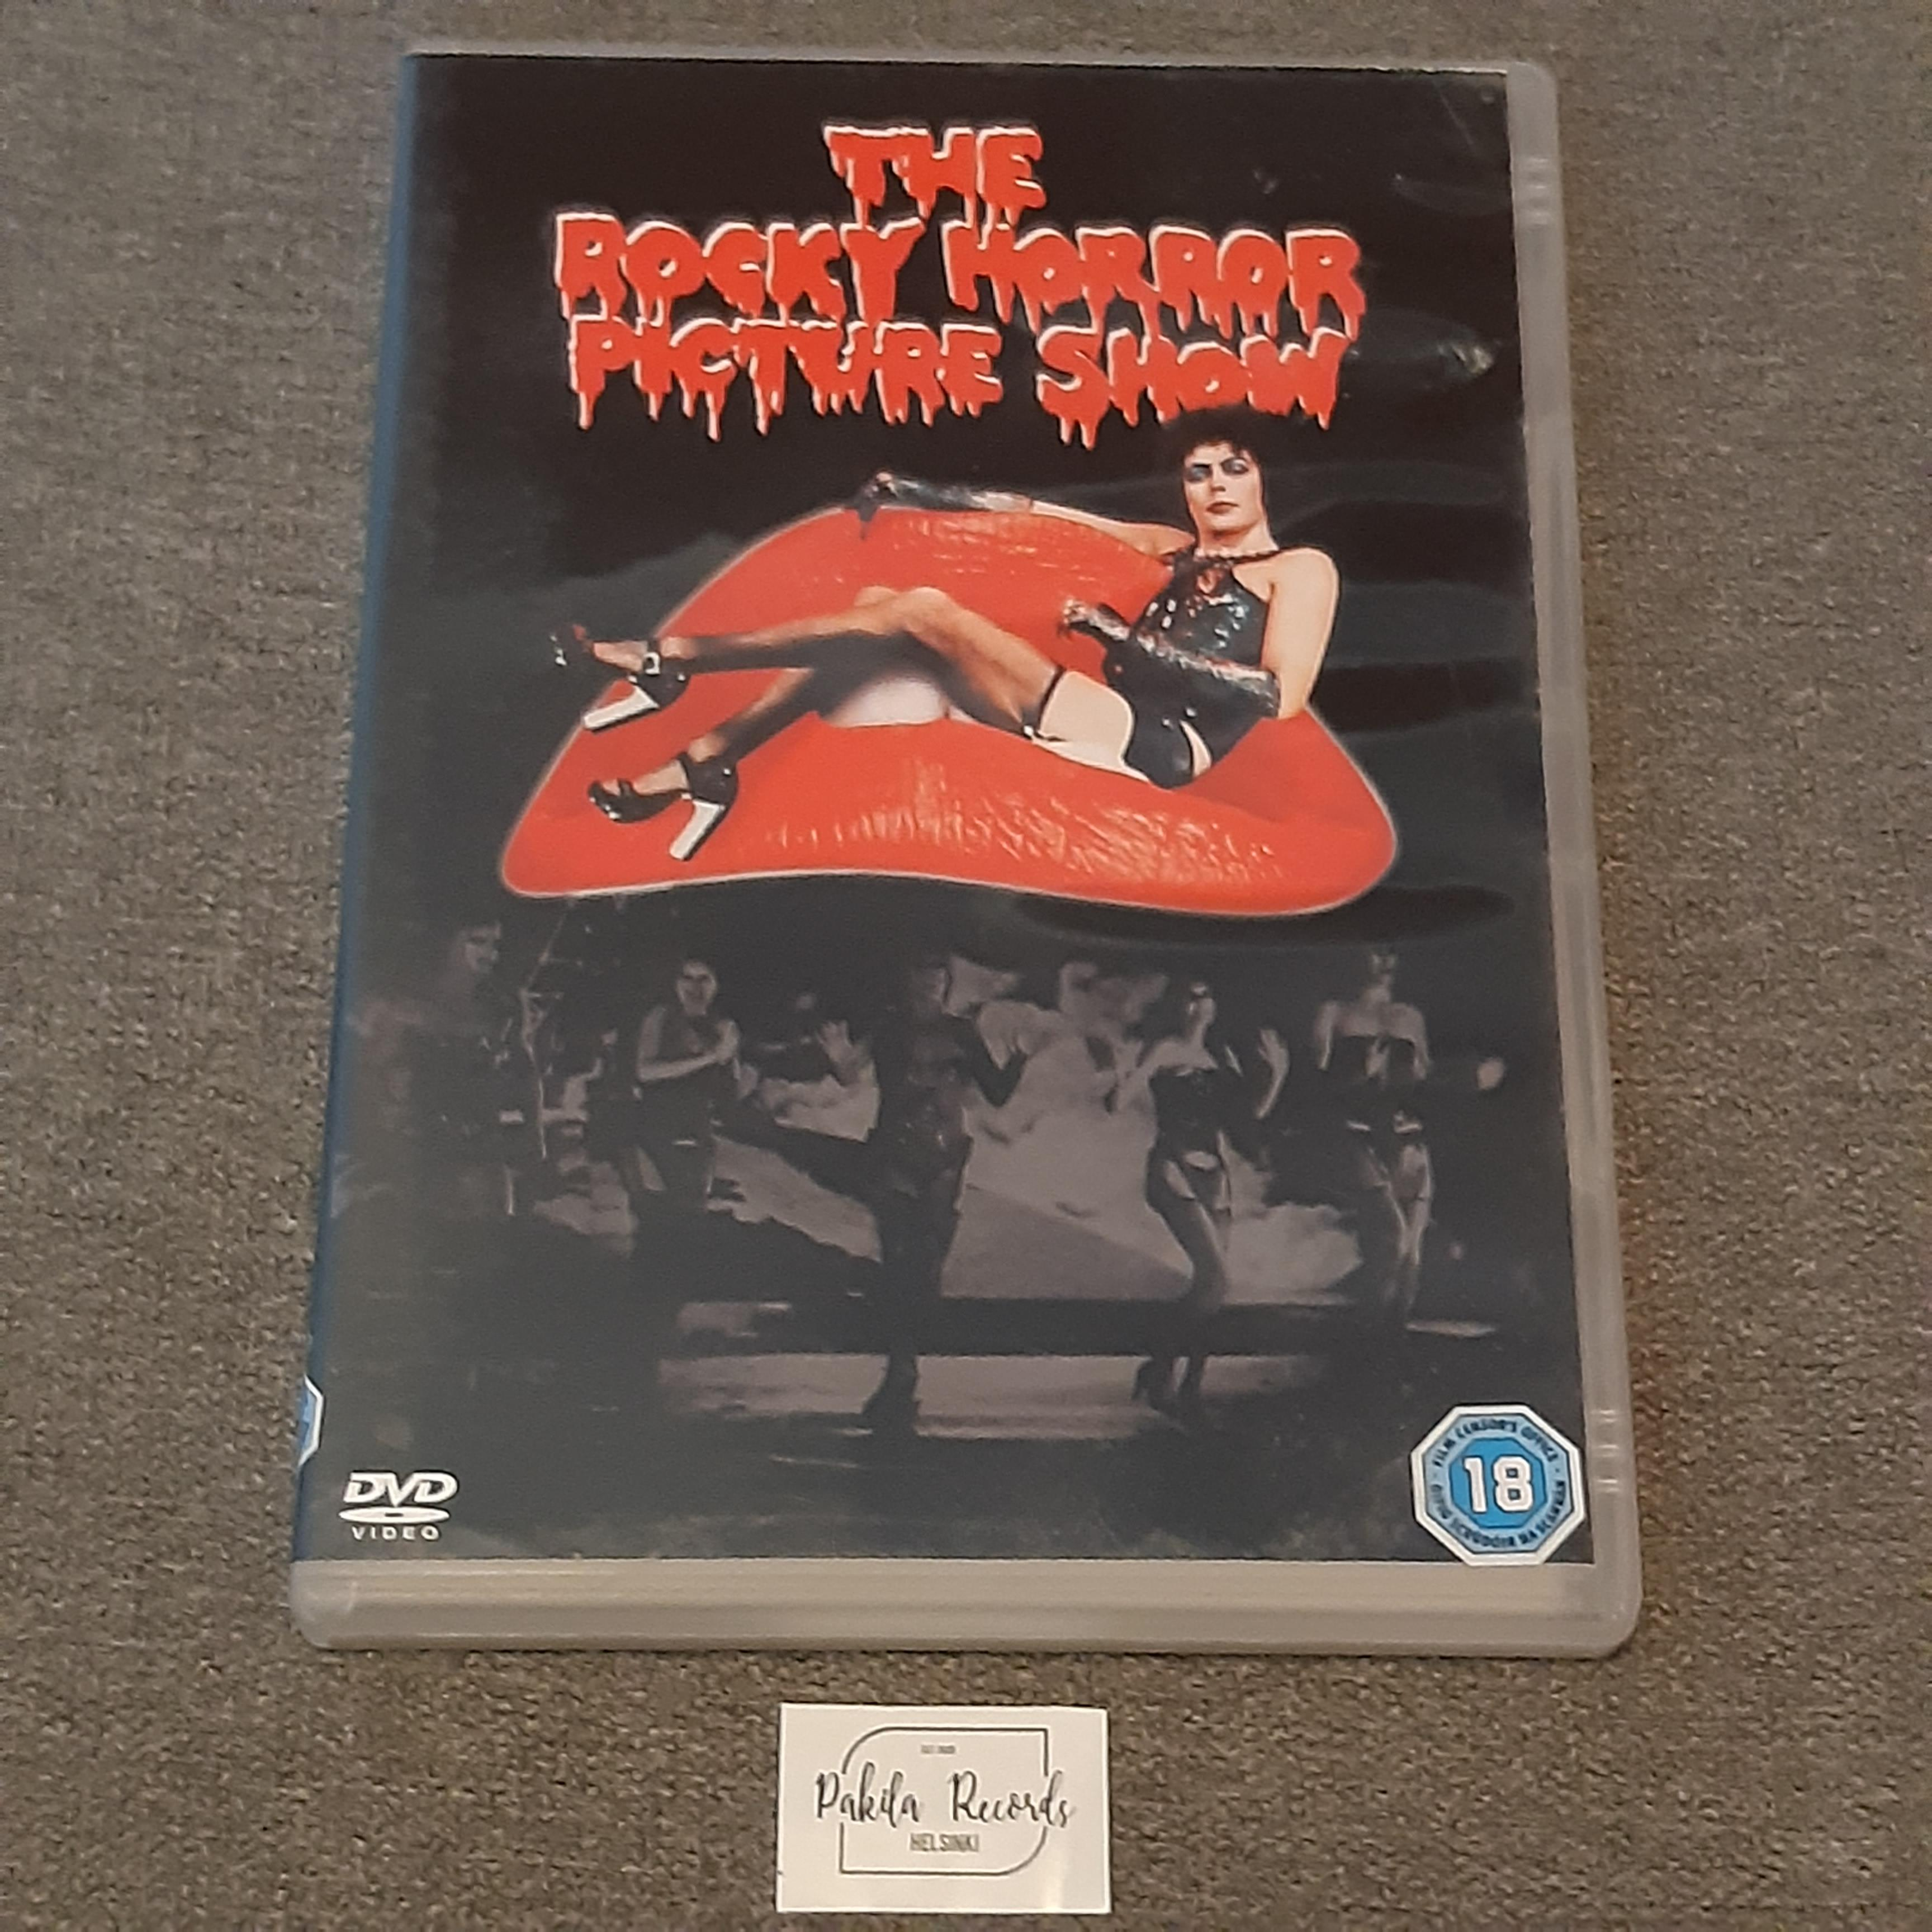 The Rocky Horror Picture Show - DVD (käytetty)